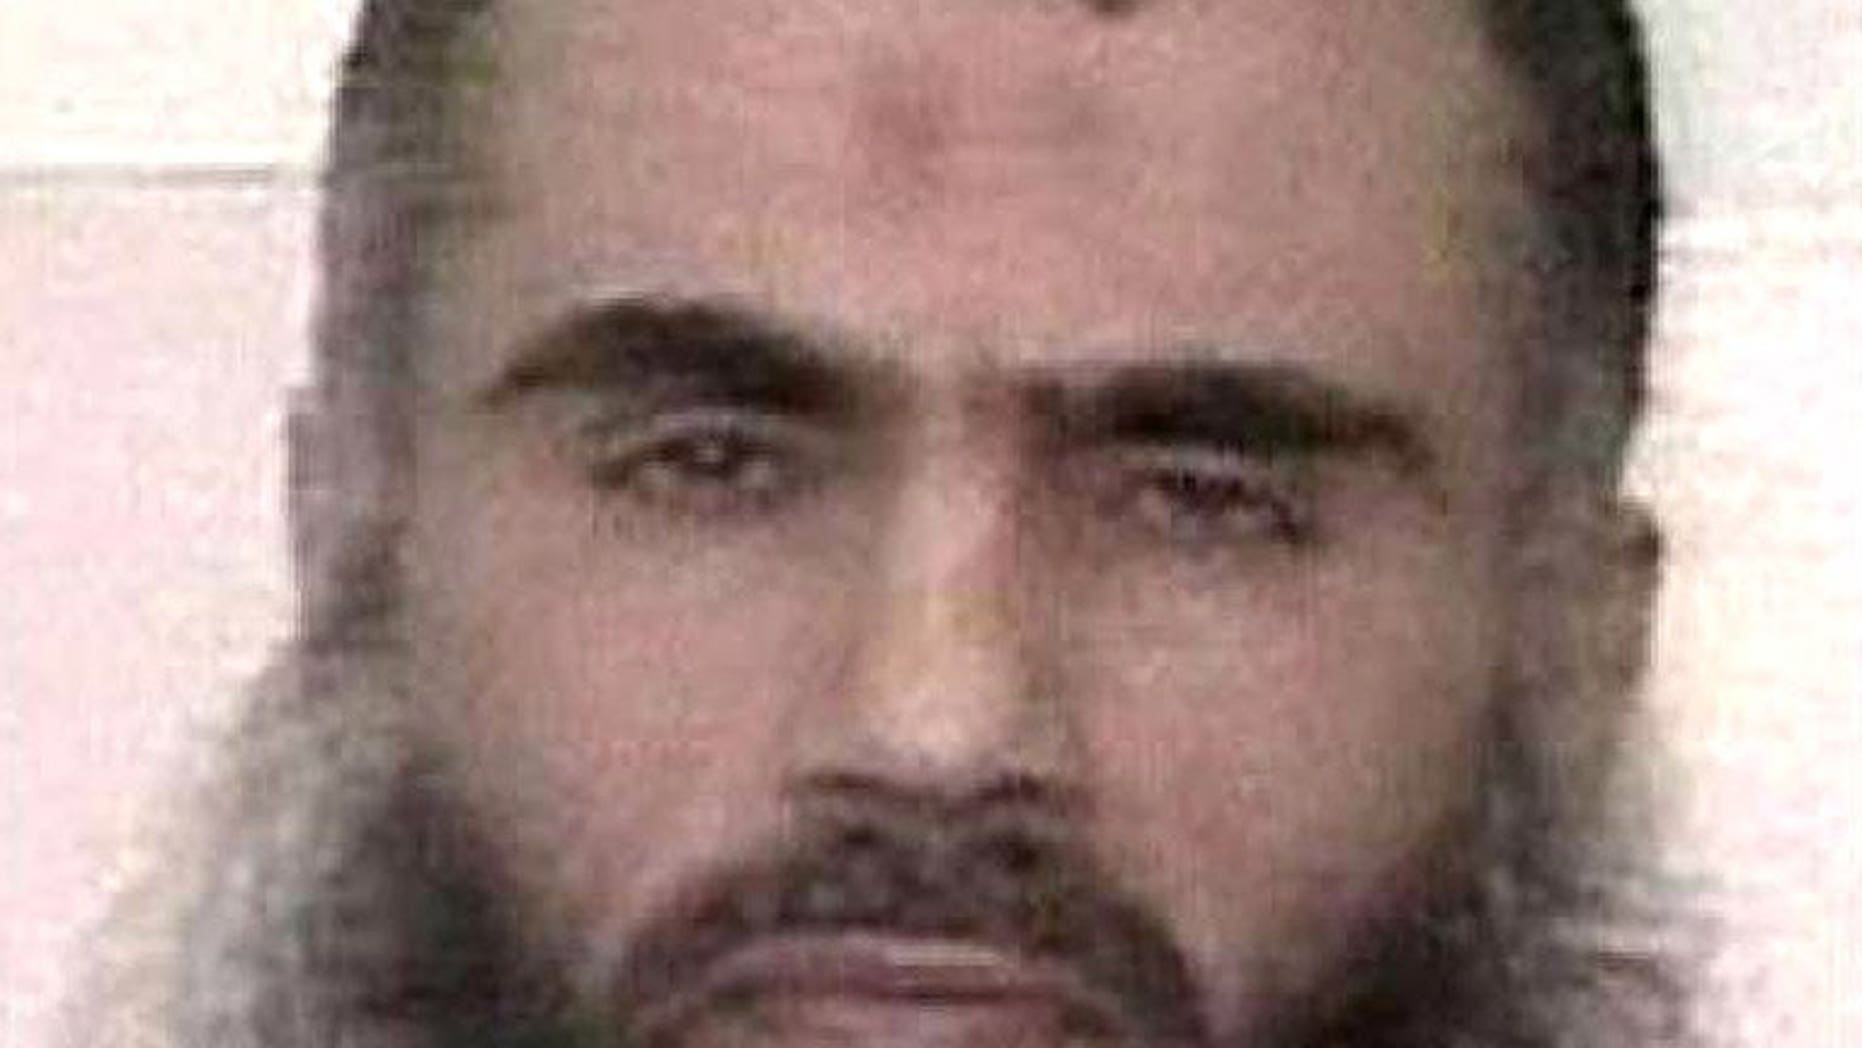 A SITE Intelligence Goup picture released on March 27, 2009 of Abu Qatada. Prime Minister David Cameron spoke of his delight on Sunday after Britain finally succeeded in deporting the radical Islamist cleric Abu Qatada to Jordan following a decade-long legal saga.